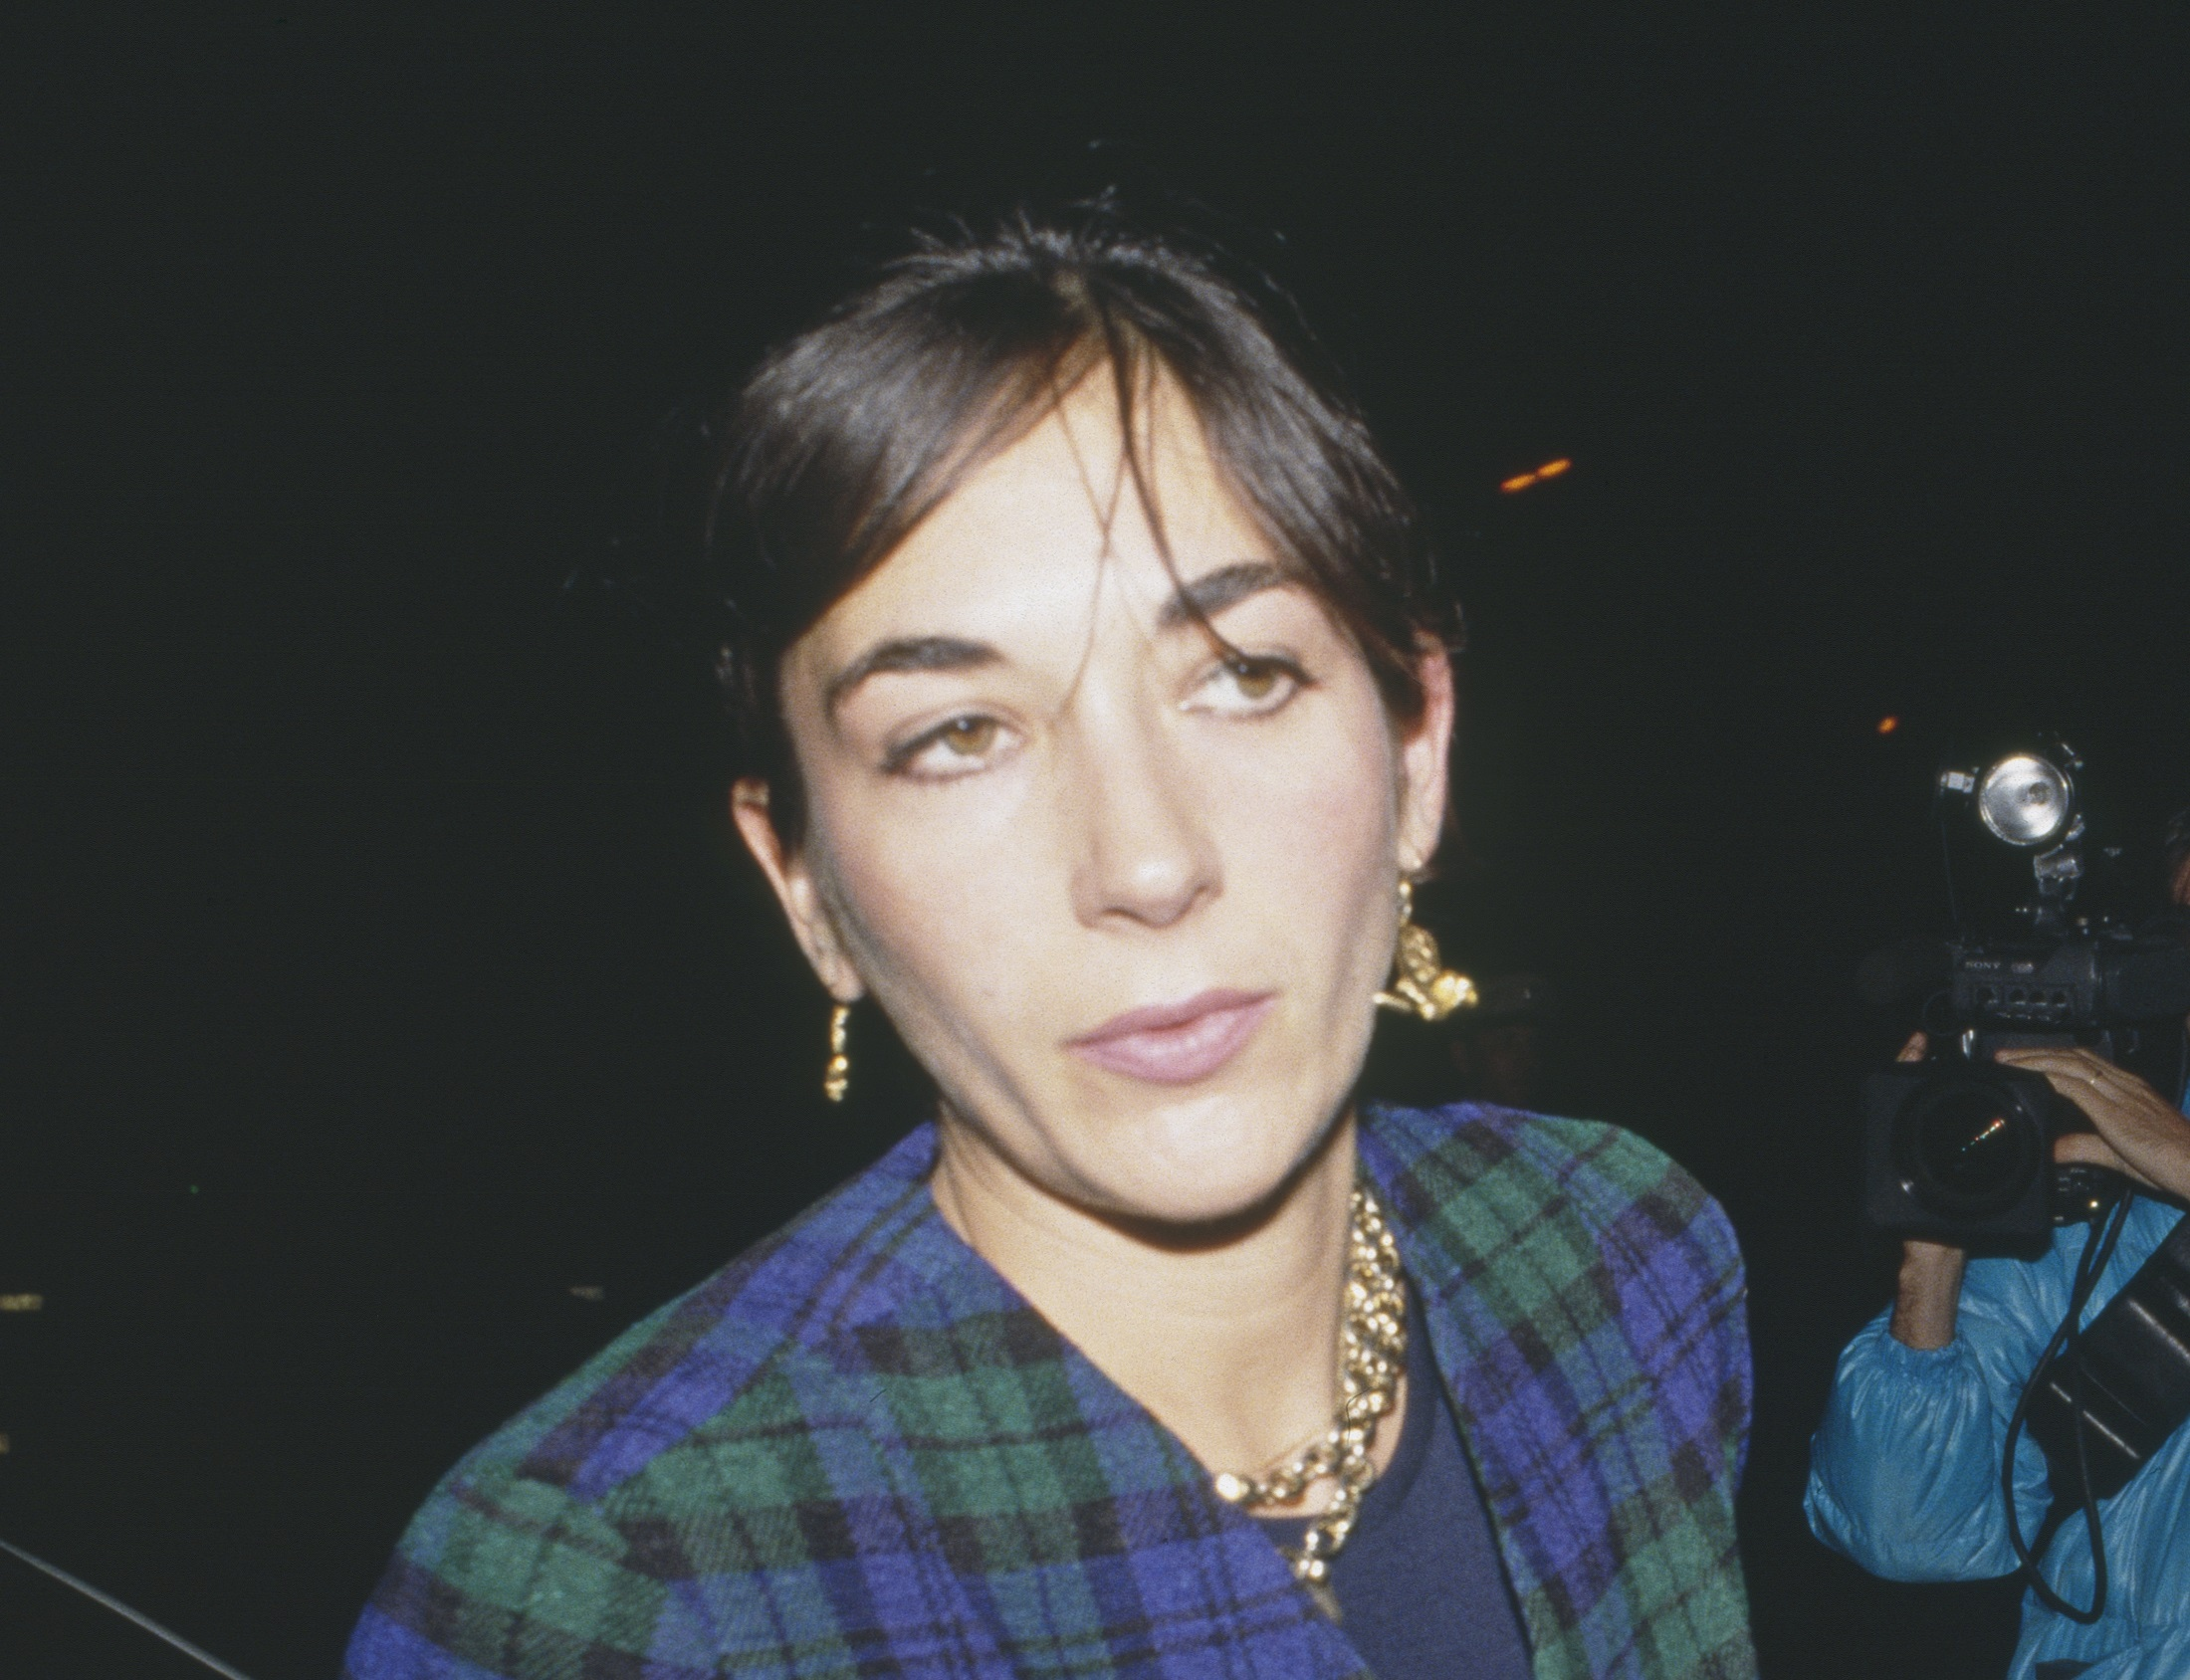 S U P E R  F O O K E D  Ghislaine Maxwell Prosecution Reveals Nearly 3 Million P